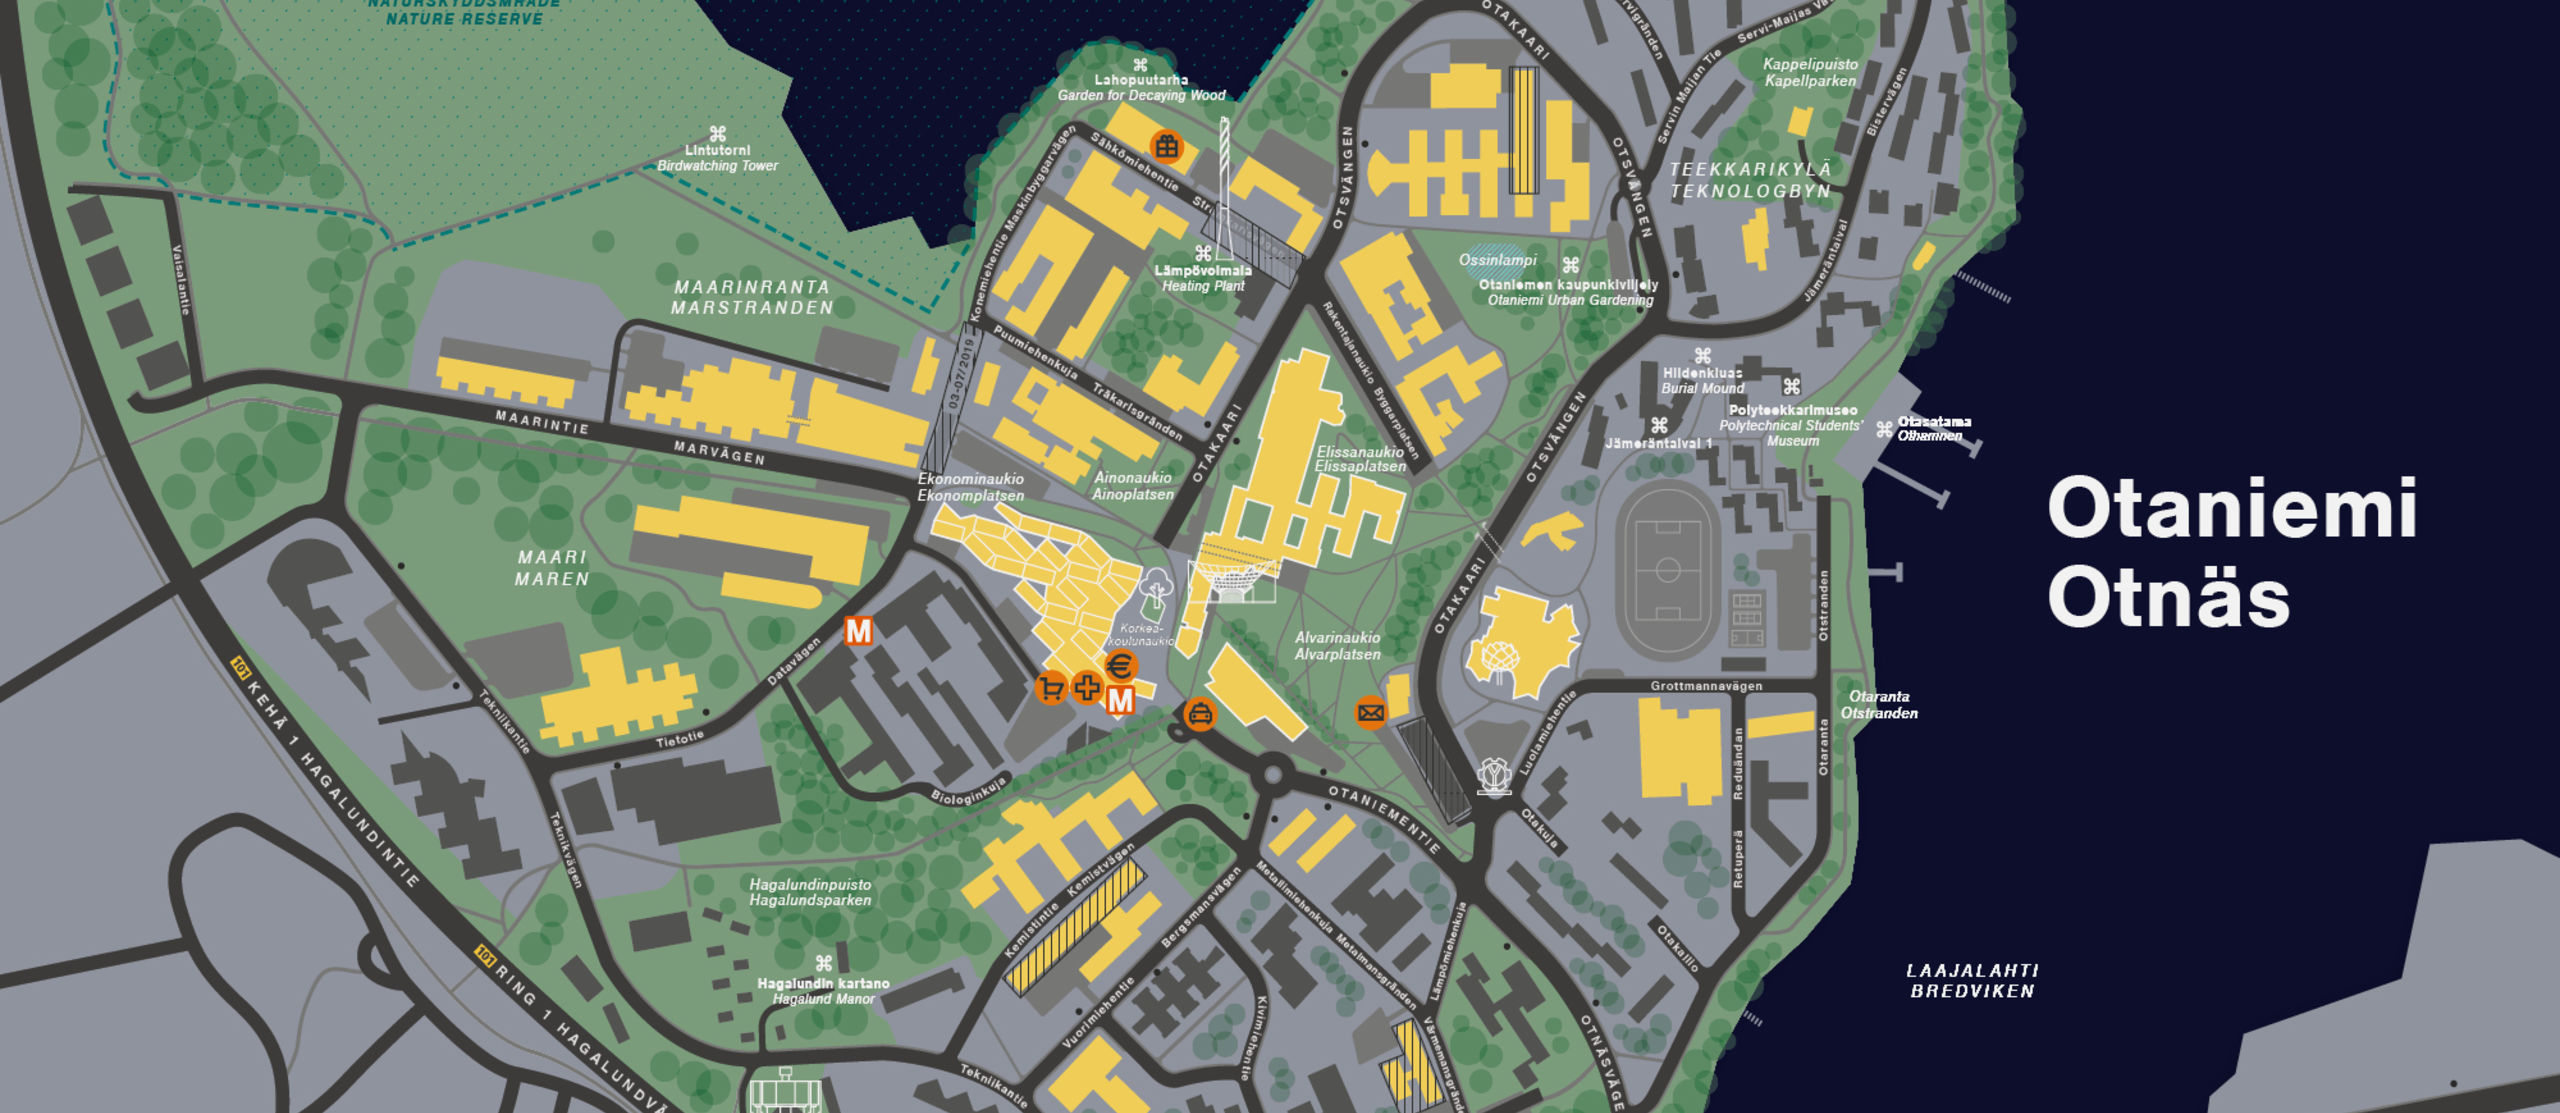 Campus Maps And Getting To Otaniemi Aalto University